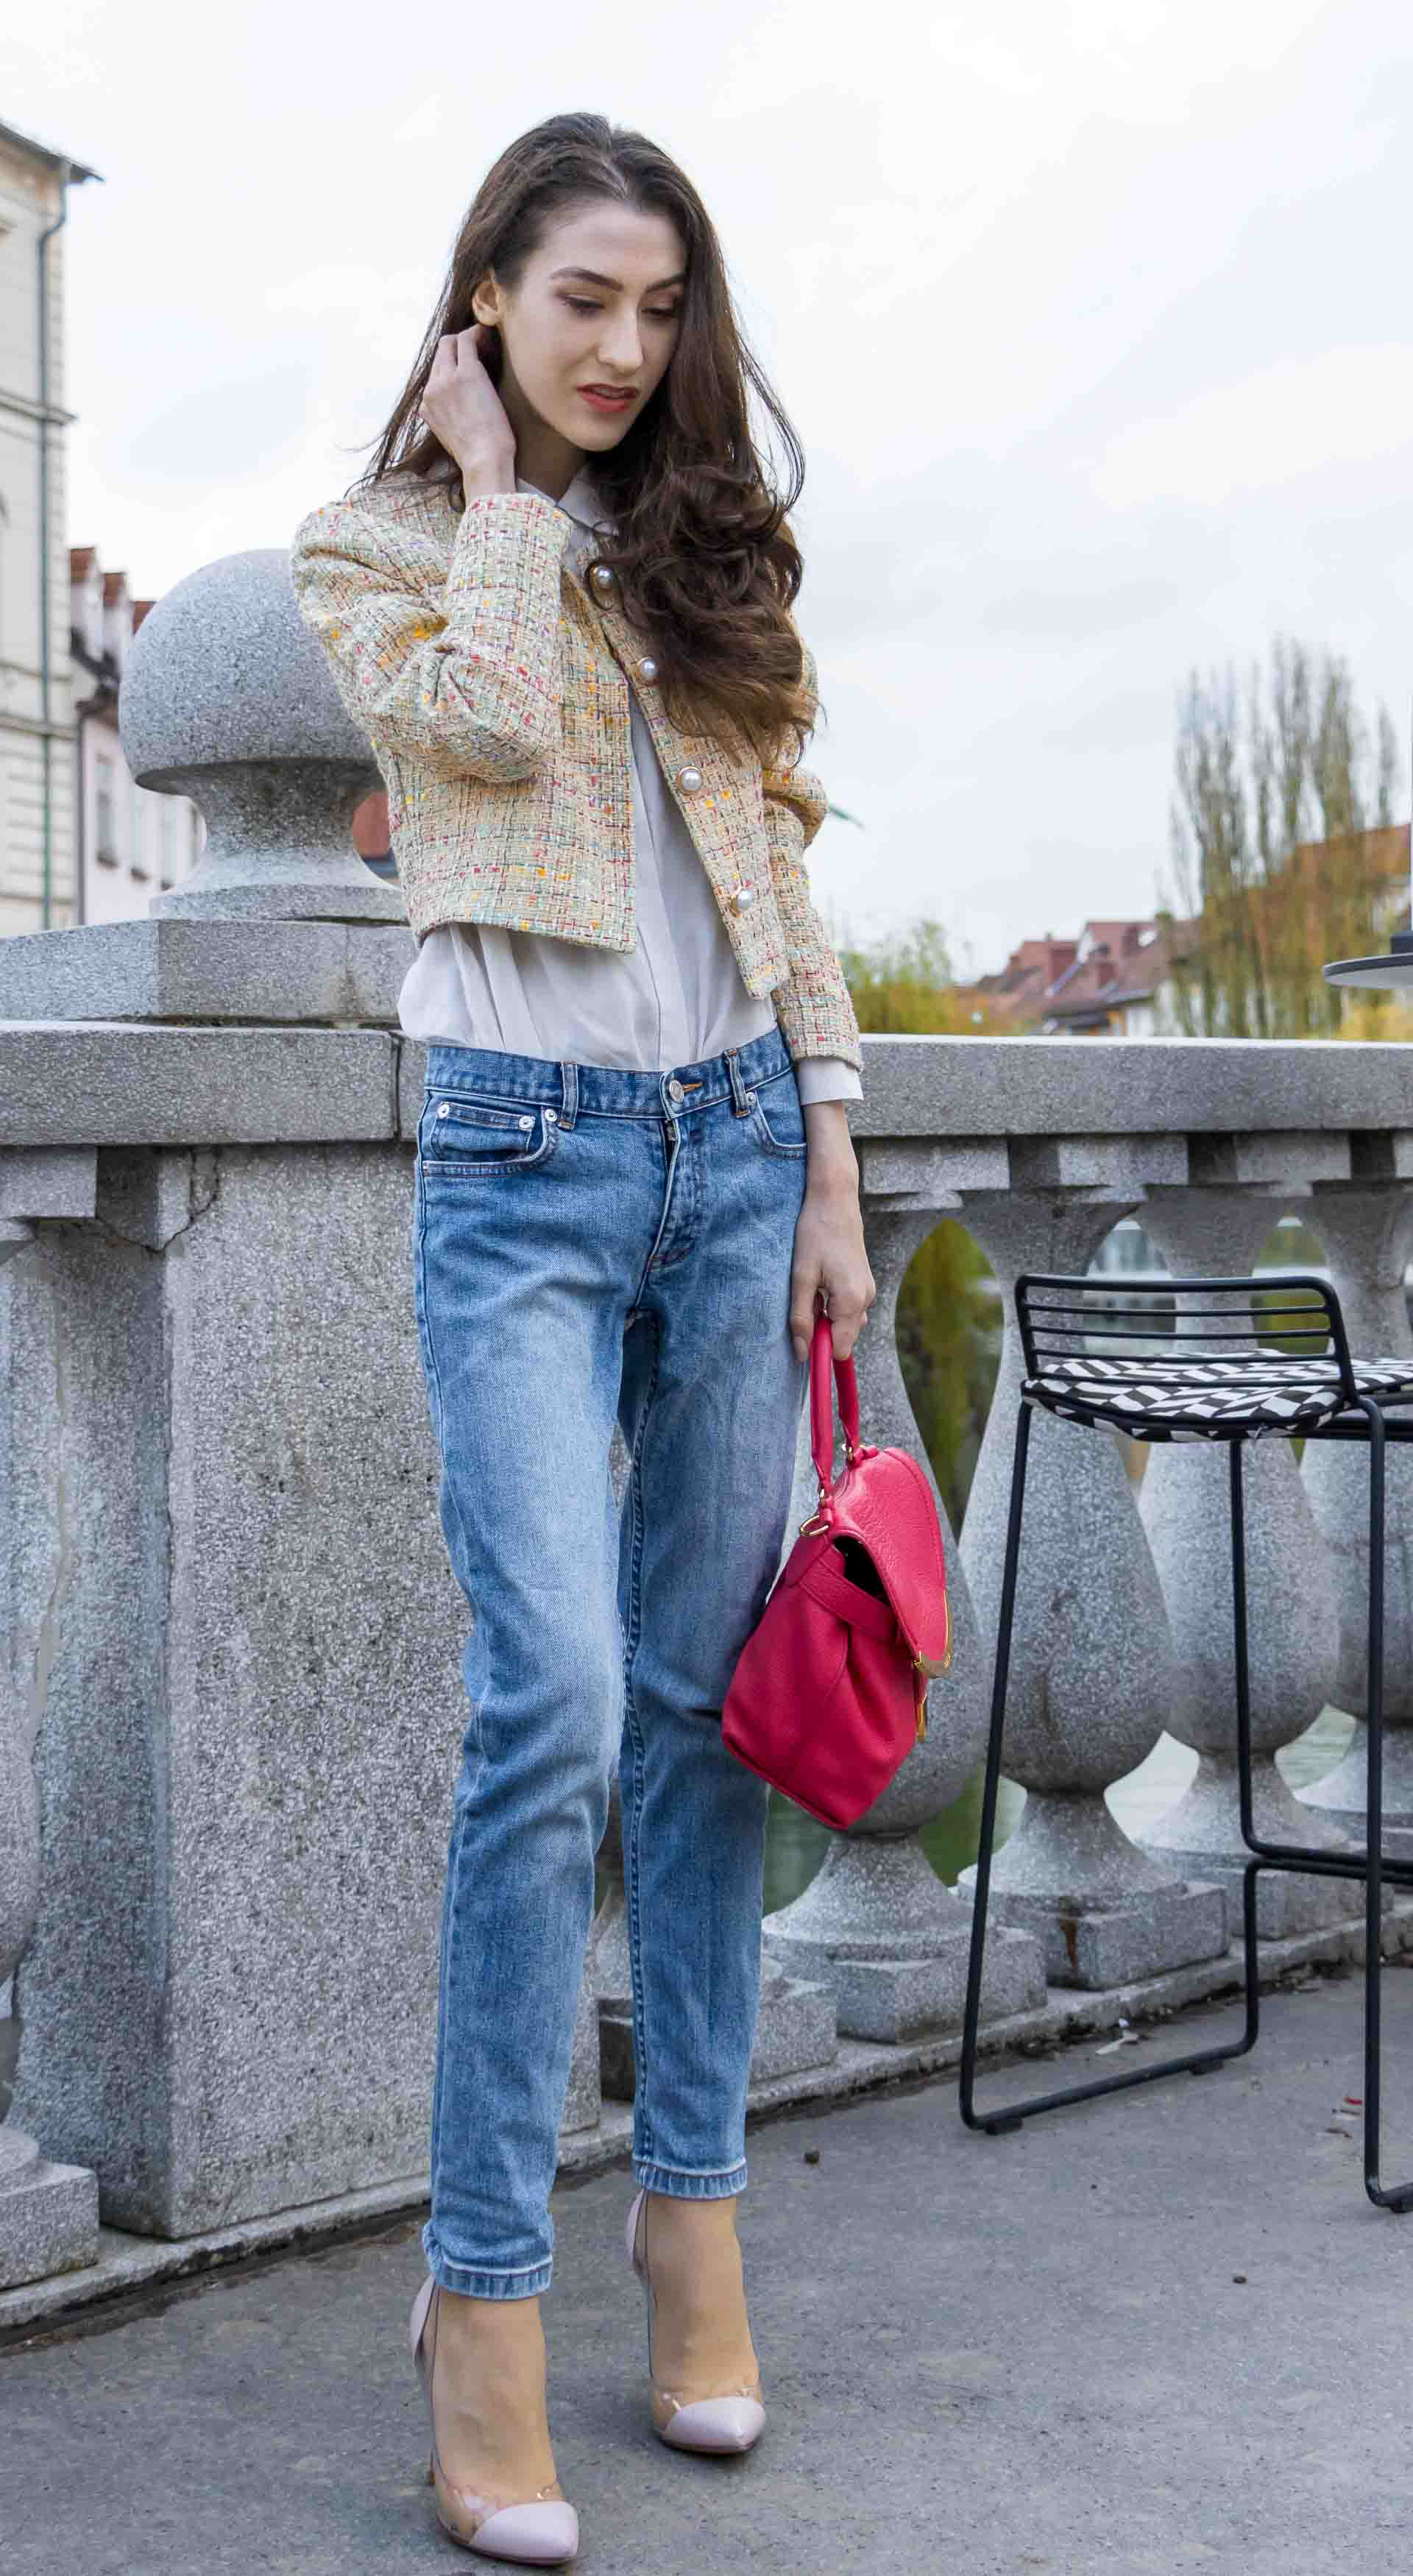 Veronika Lipar Fashion Blogger of Brunette from Wall Street wearing chic casual everyday spring outfit, the yellow tweed jacket from Storets, blue jeans from A.P.C., blush Gianvito Rossi plexi pumps, pink top handle bag and organza white shirt on Sunday